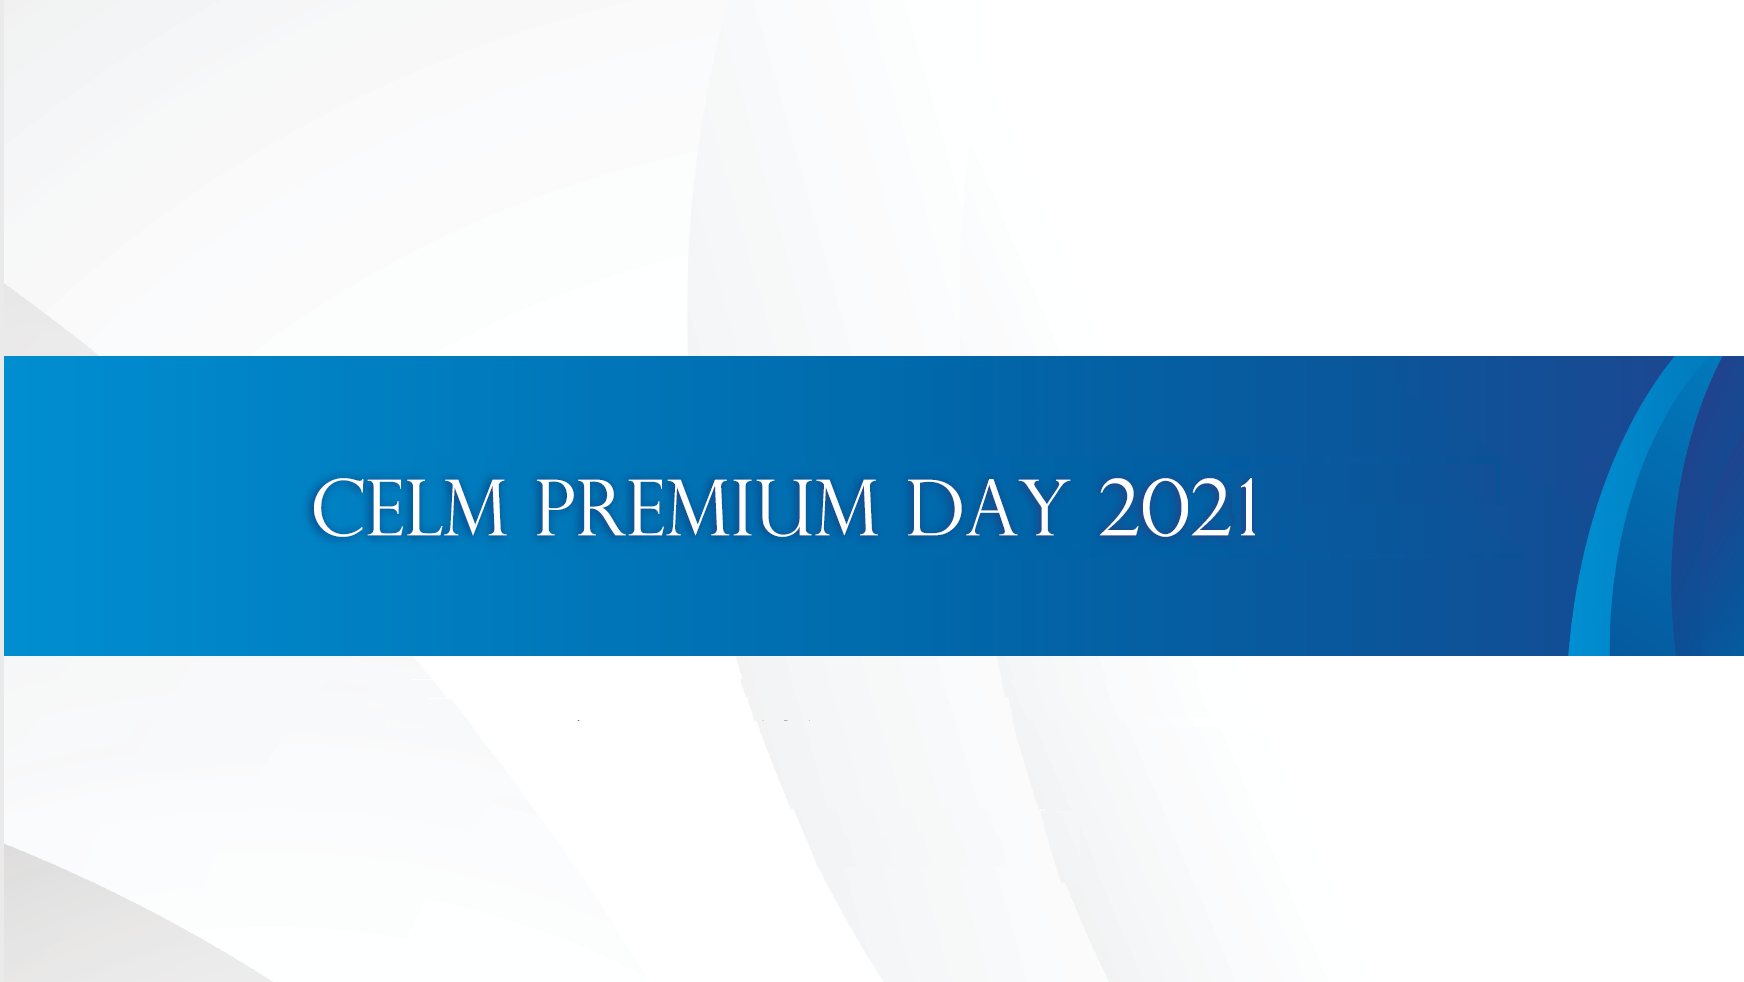 CELM PREMIUM DAY 2021-Discovery